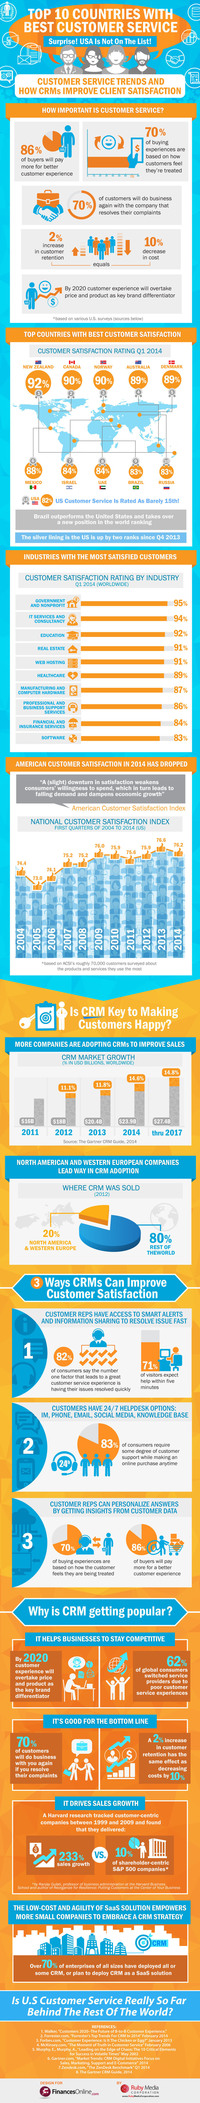 customer satisfaction infographic